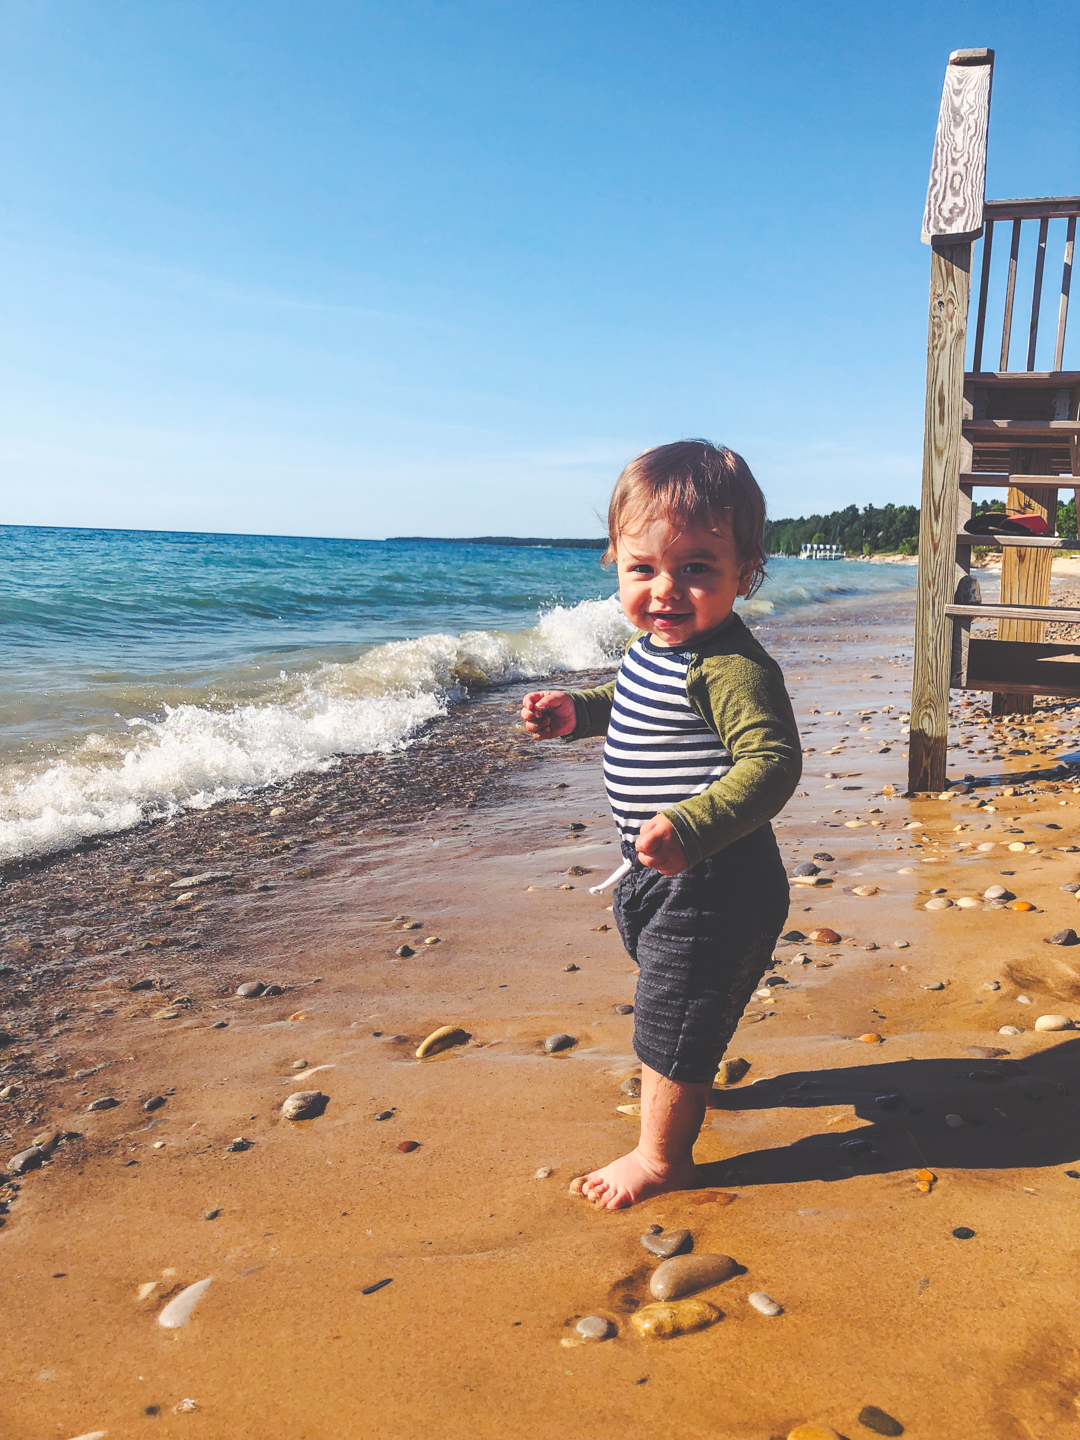 Northern Michigan family vacation travel guide, lake michigan family vacation, Michigan vacation guide, Michigan vacation with kids